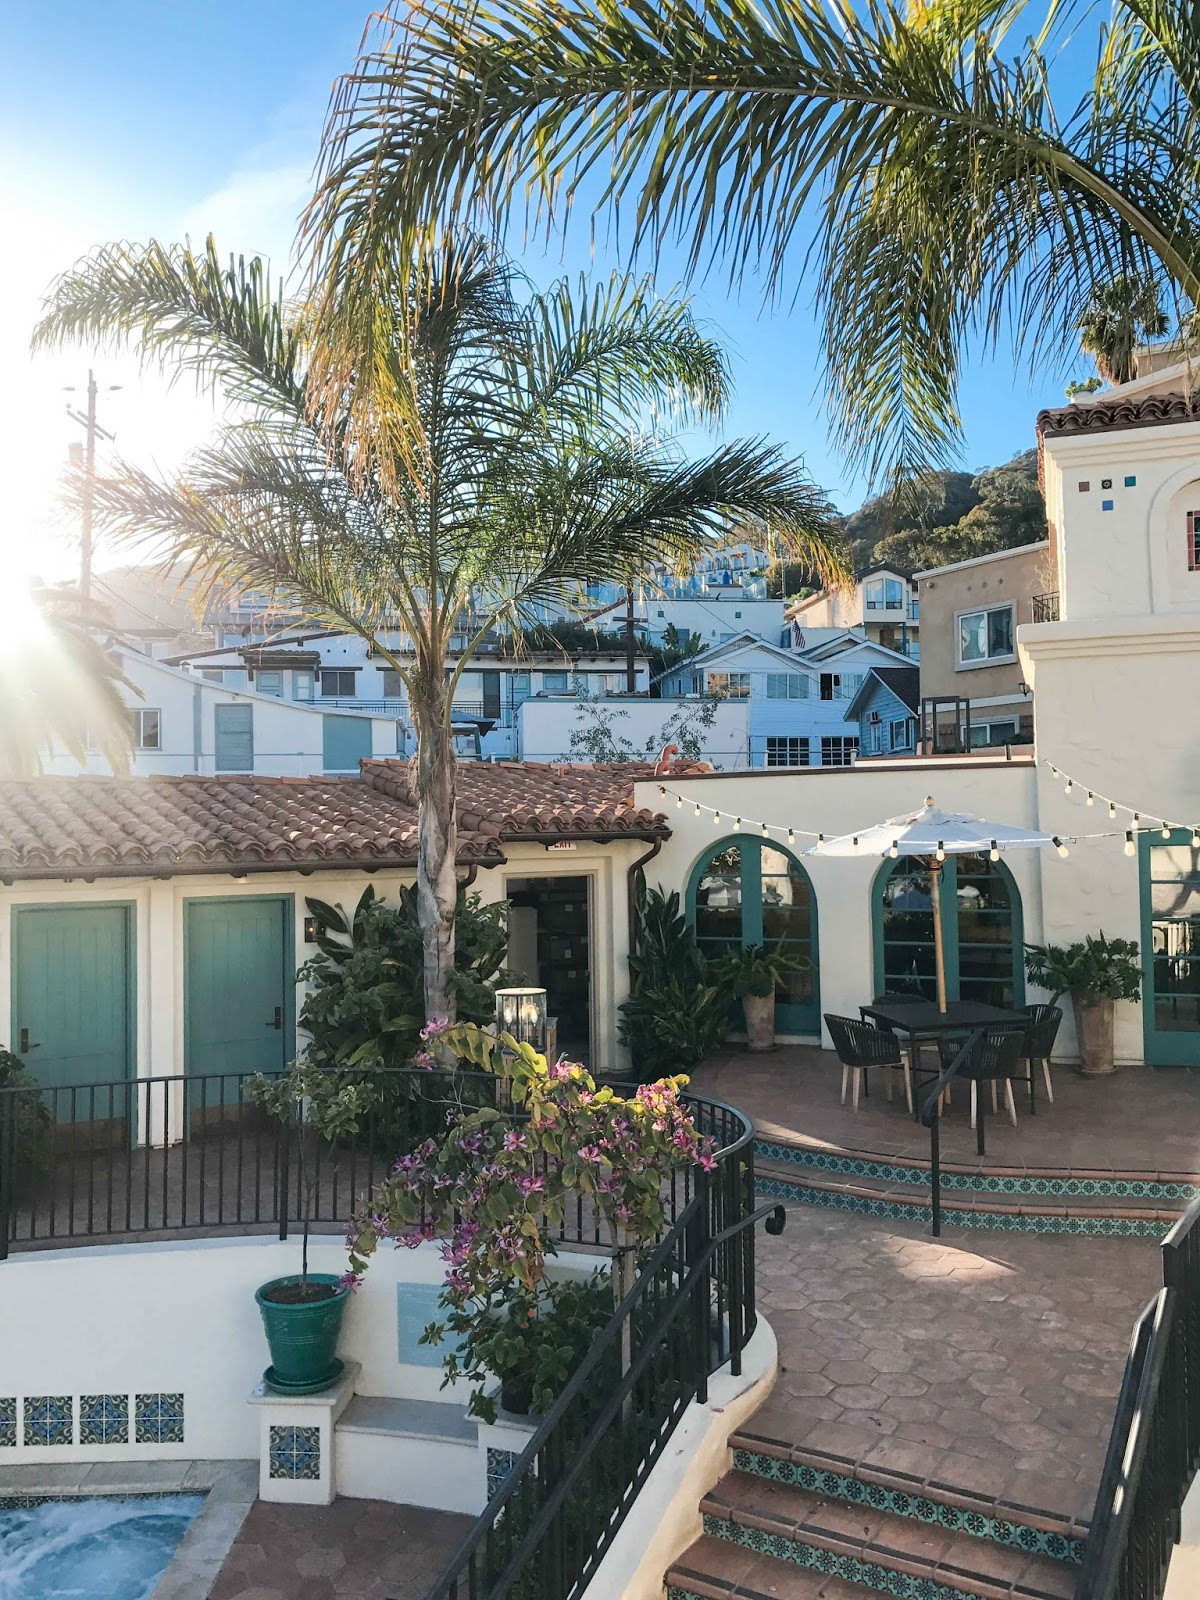 what to do in Catalina, Island Catalina Spa, Catalina Travel Guide